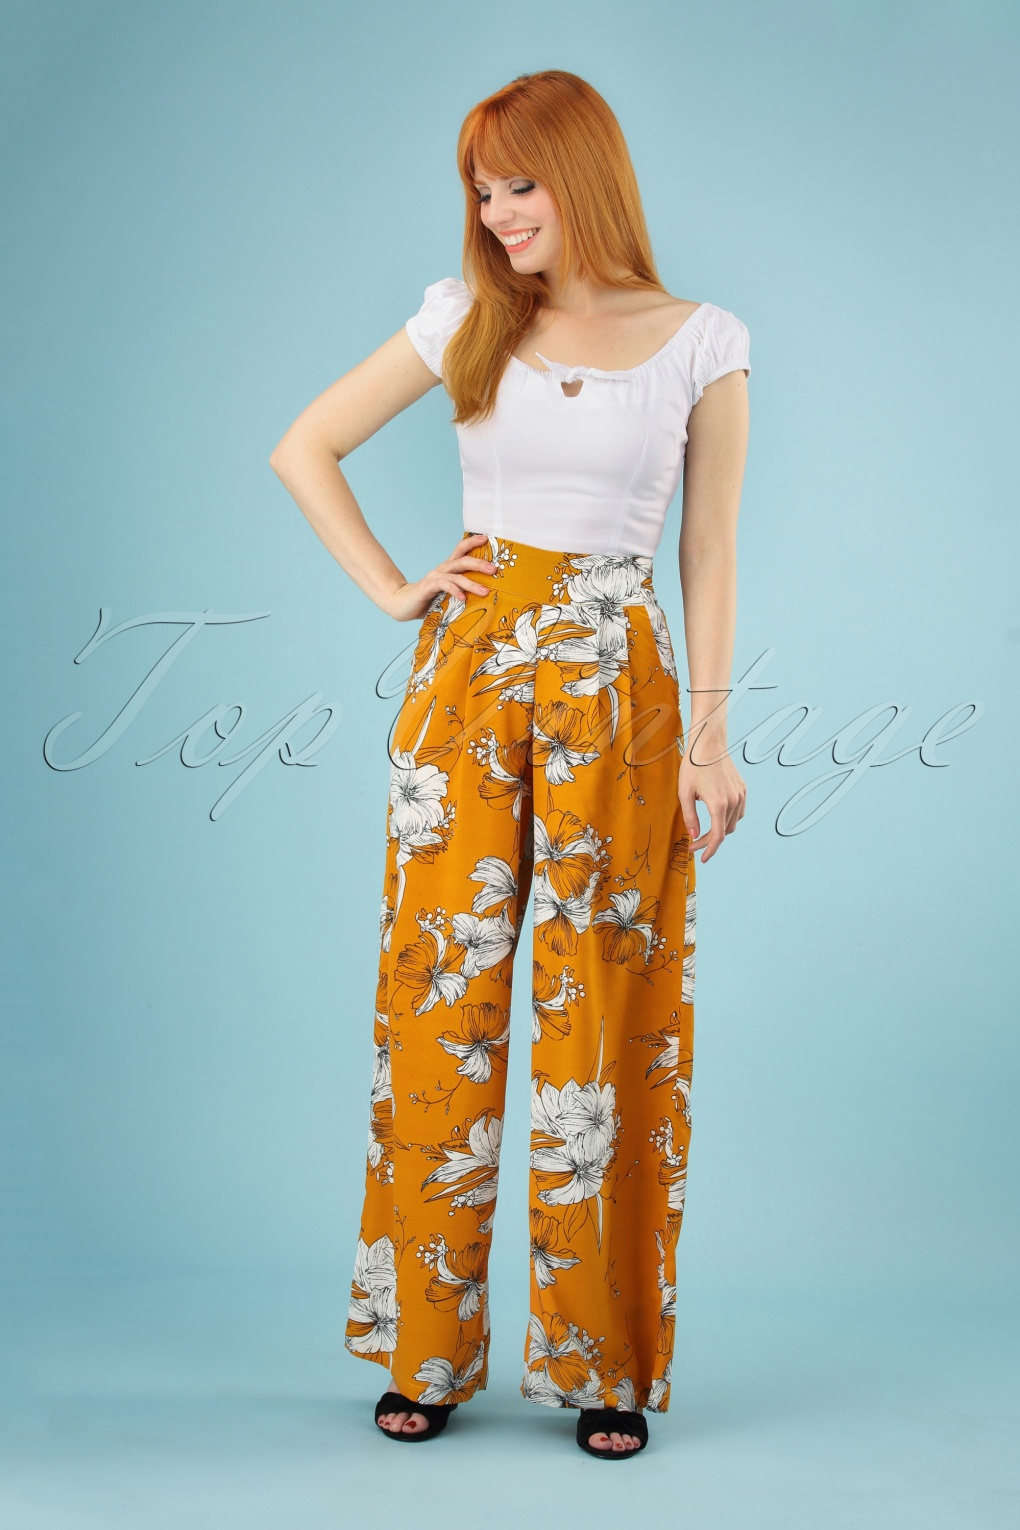 Vintage High Waisted Trousers, Sailor Pants, Jeans 70s Stephanie Floral Palazzo Trousers in Mustard �34.07 AT vintagedancer.com